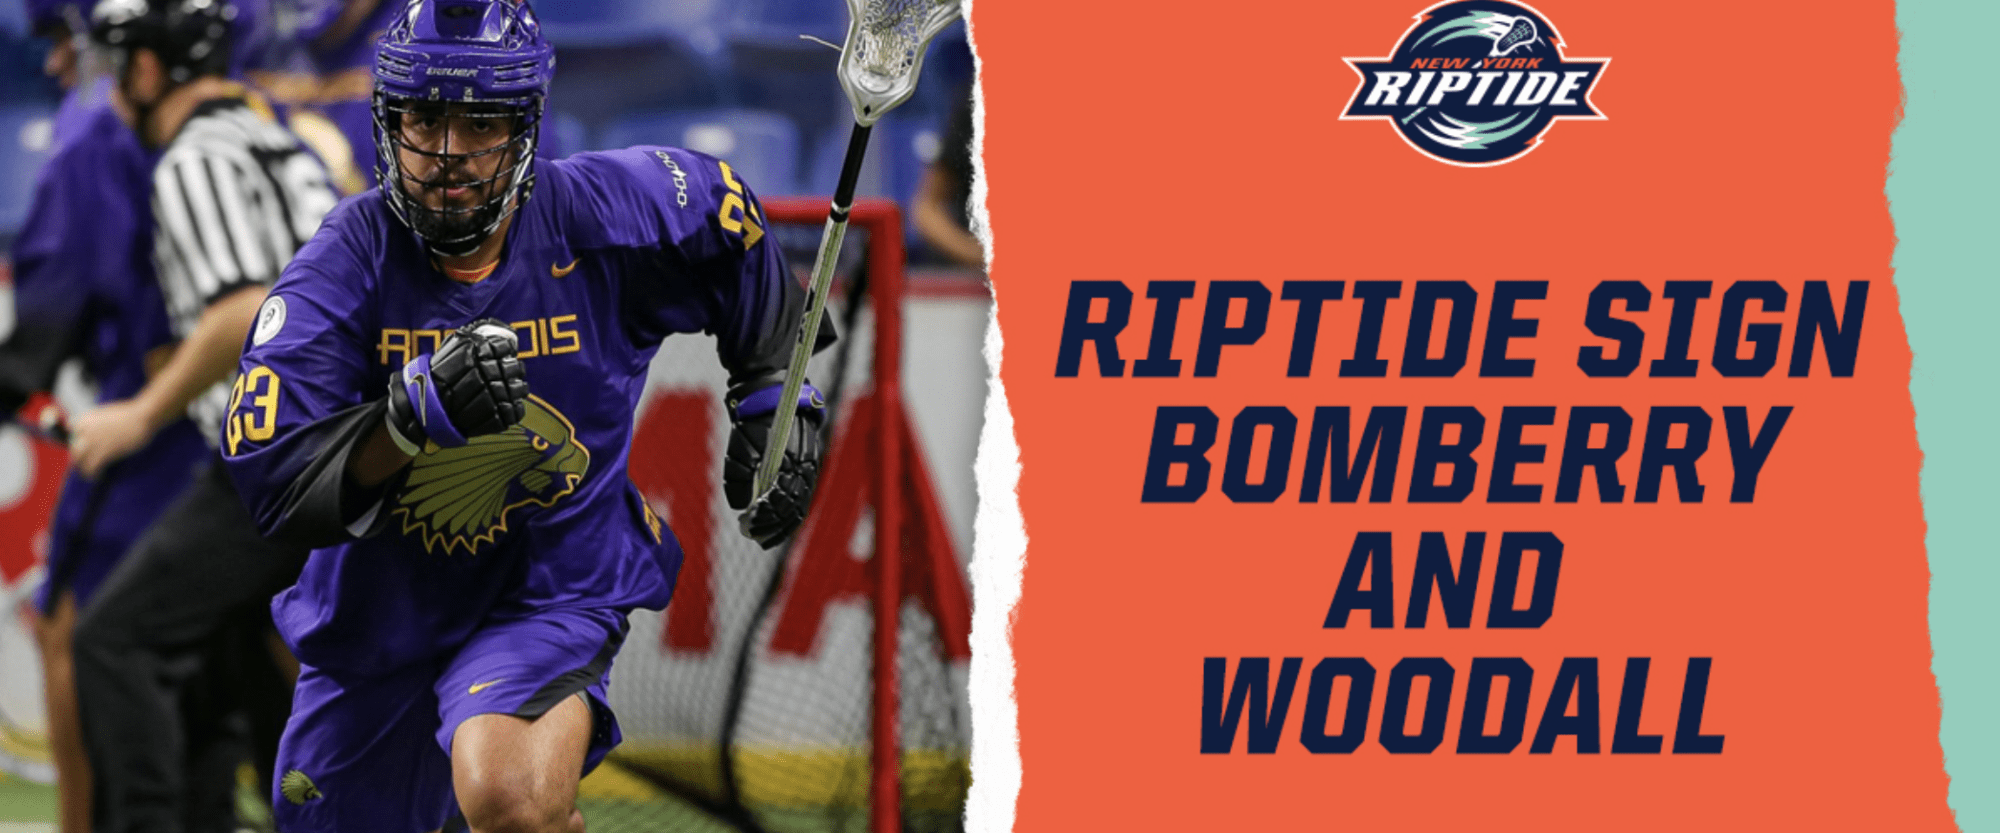 tyson bomberry nll national lacrosse league new york riptide